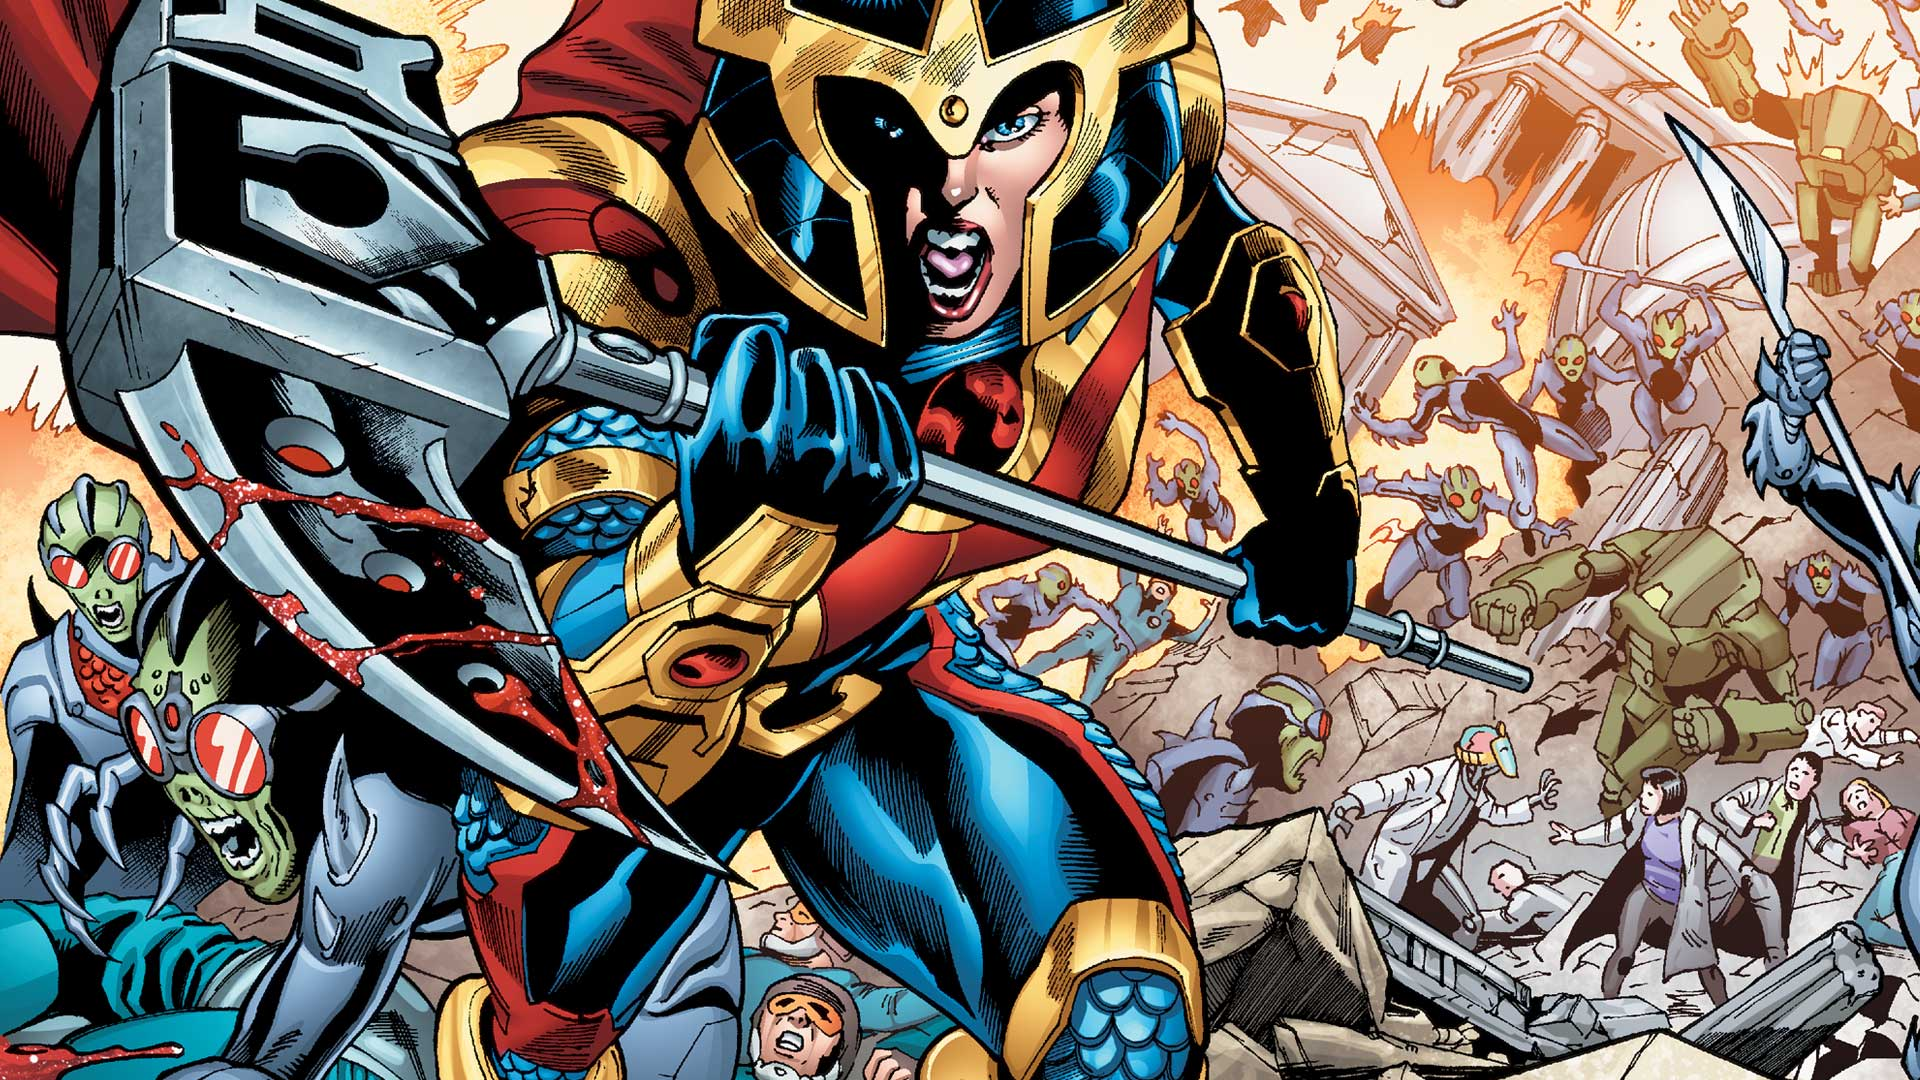 Tom King reportedly co-writing New Gods script with Ava DuVernay UPDATED